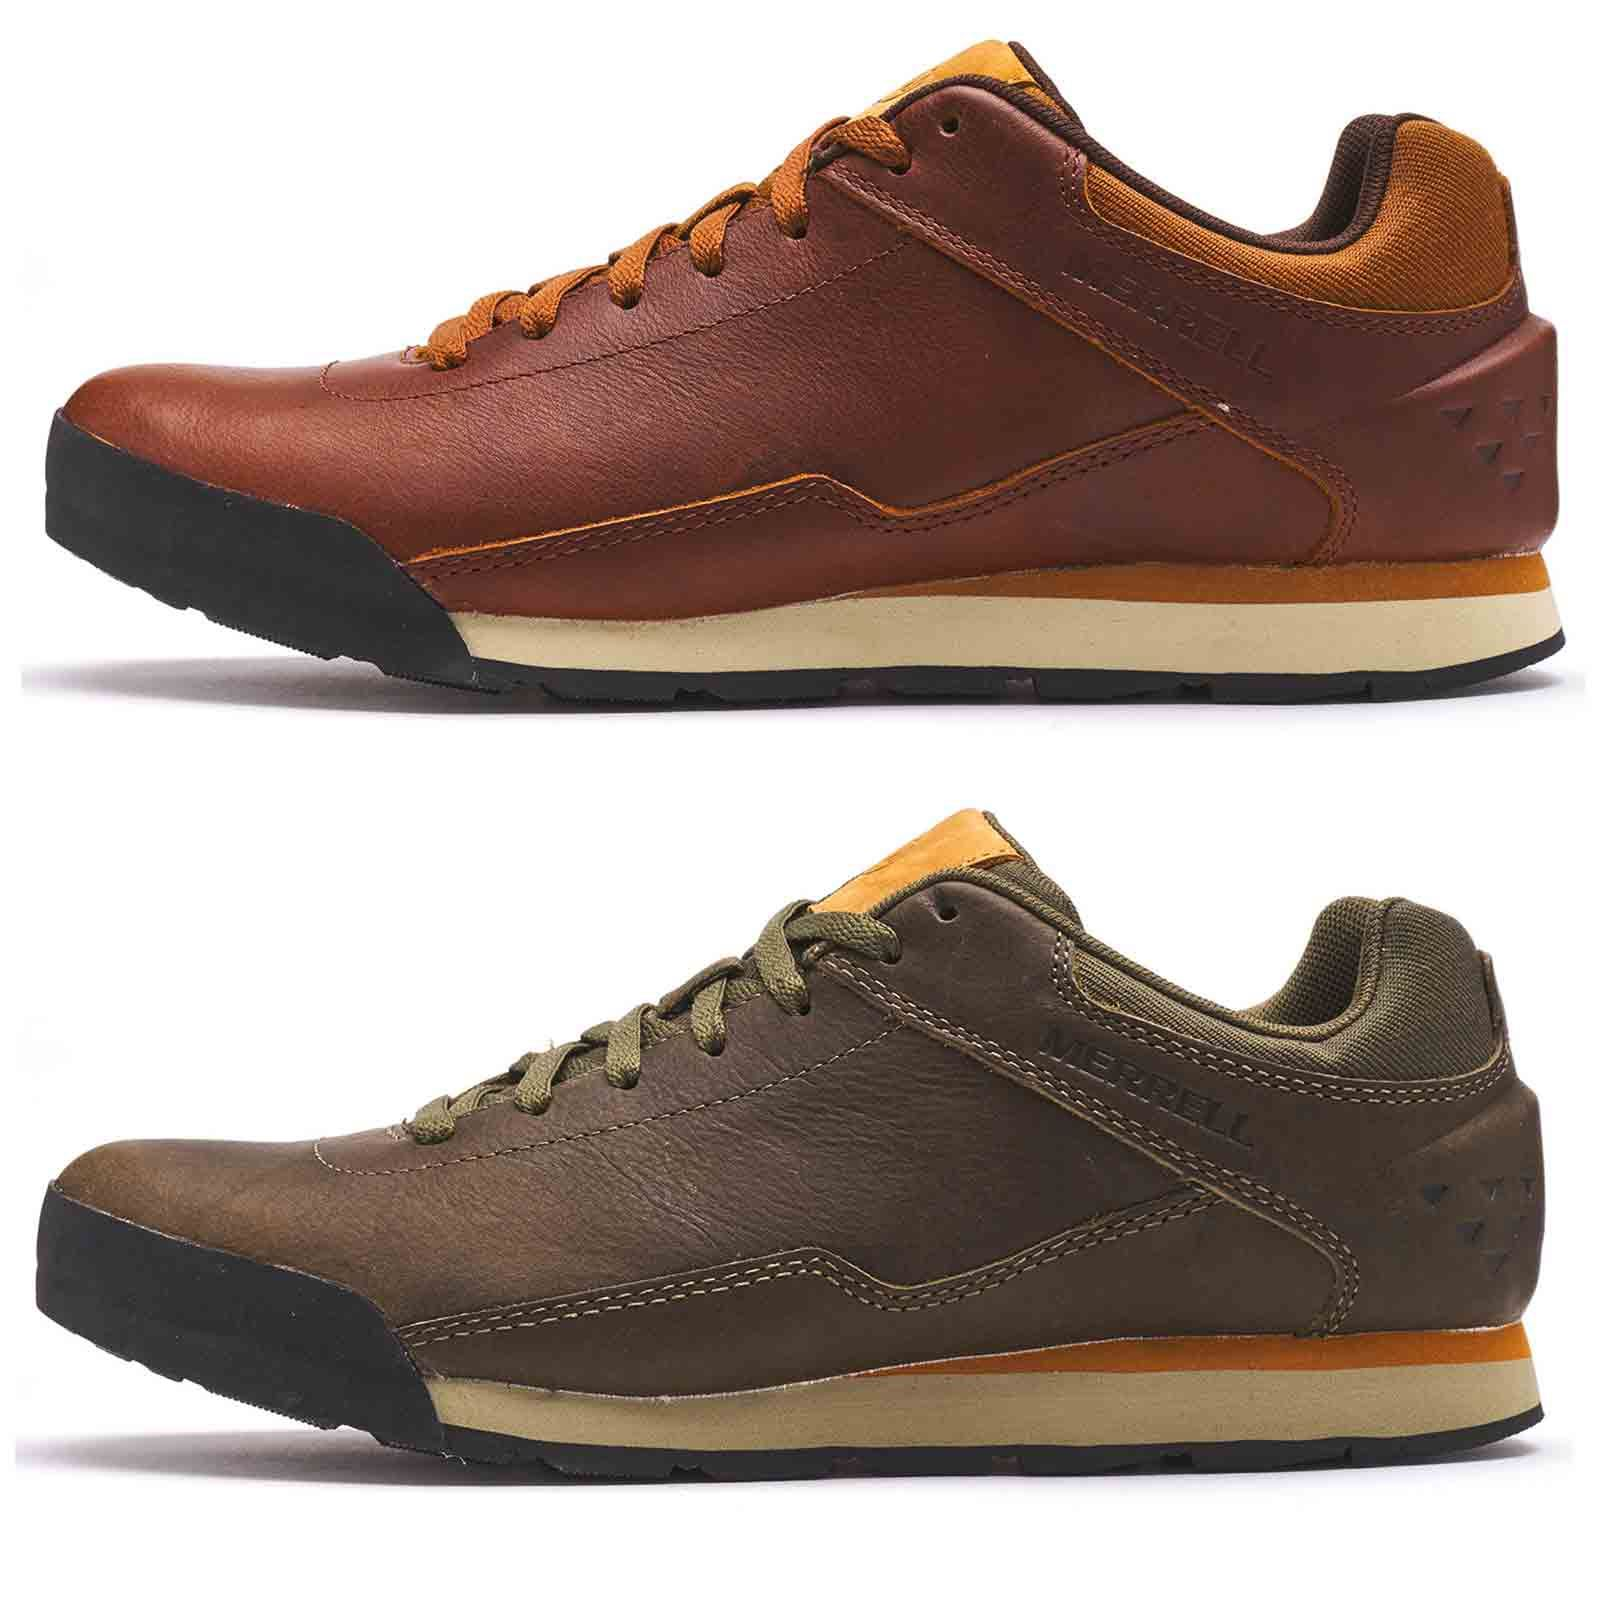 Details about Merrell Burnt Rocked Leather Lace Up Casual Trainers in Dusty Green & Robe Brown